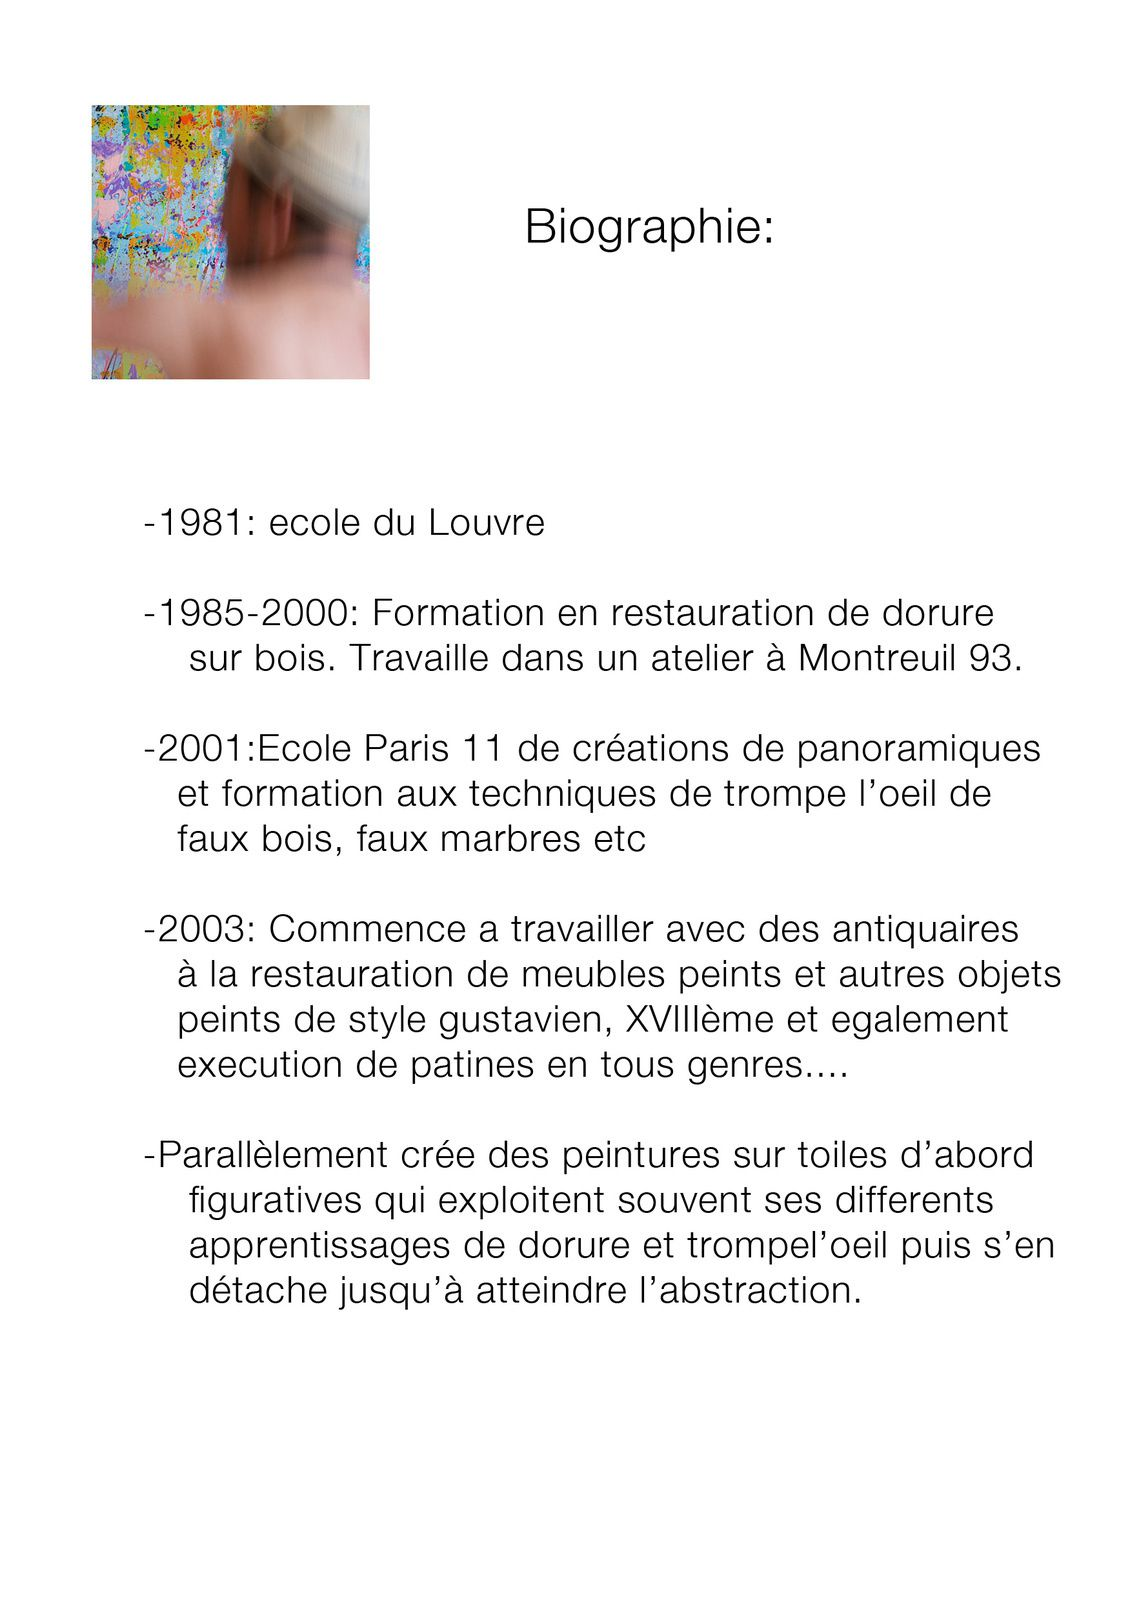 Biographie chris claisse